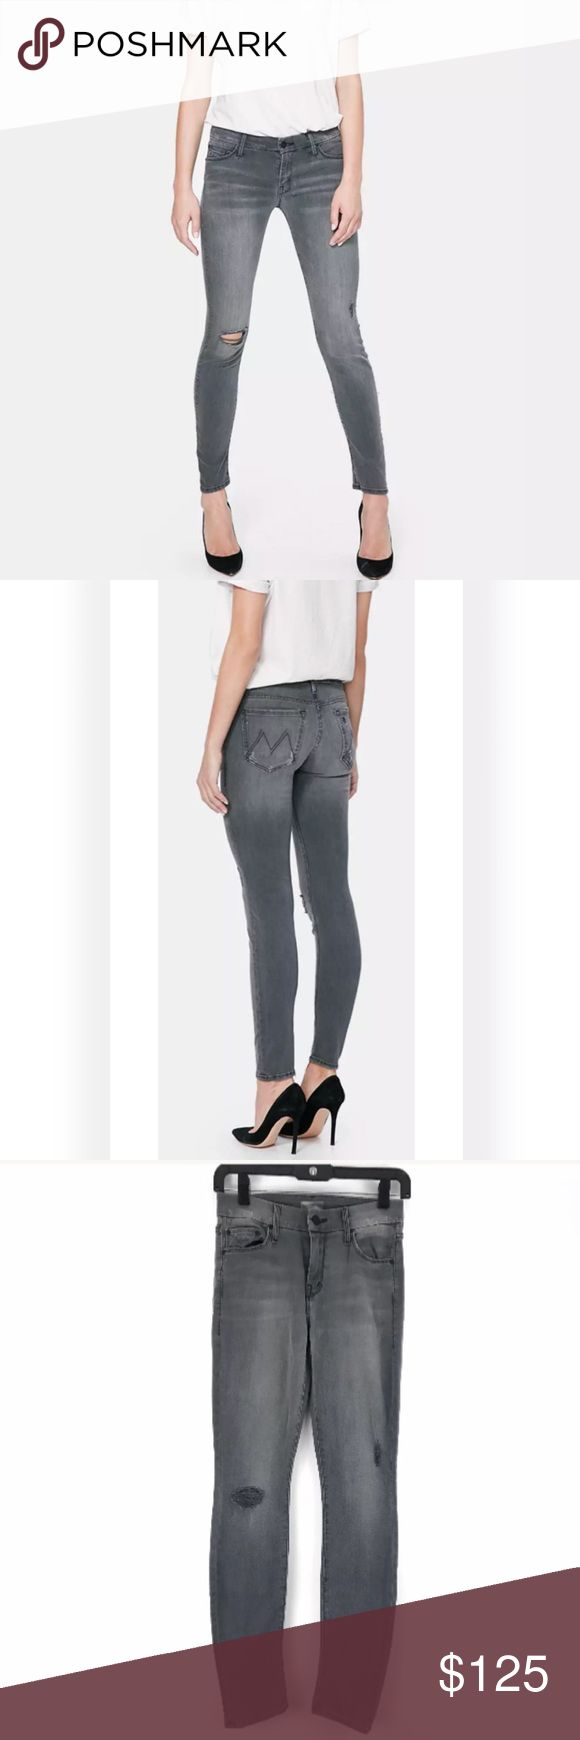 """Mother Denim The Looker Skinny Gray Jeans NEW no tags The Looker is Mother's classic mid rise, skinny jean in a form fitting silhouette guaranteed to turn heads Last Chance Saloon is a faded medium grey was, with a smooth hem and thrashed knee Style # 1001L-303 Approx. Measurements laying flat Waist 13"""" Rise 9"""" Inseam 30"""" MOTHER Jeans Skinny"""